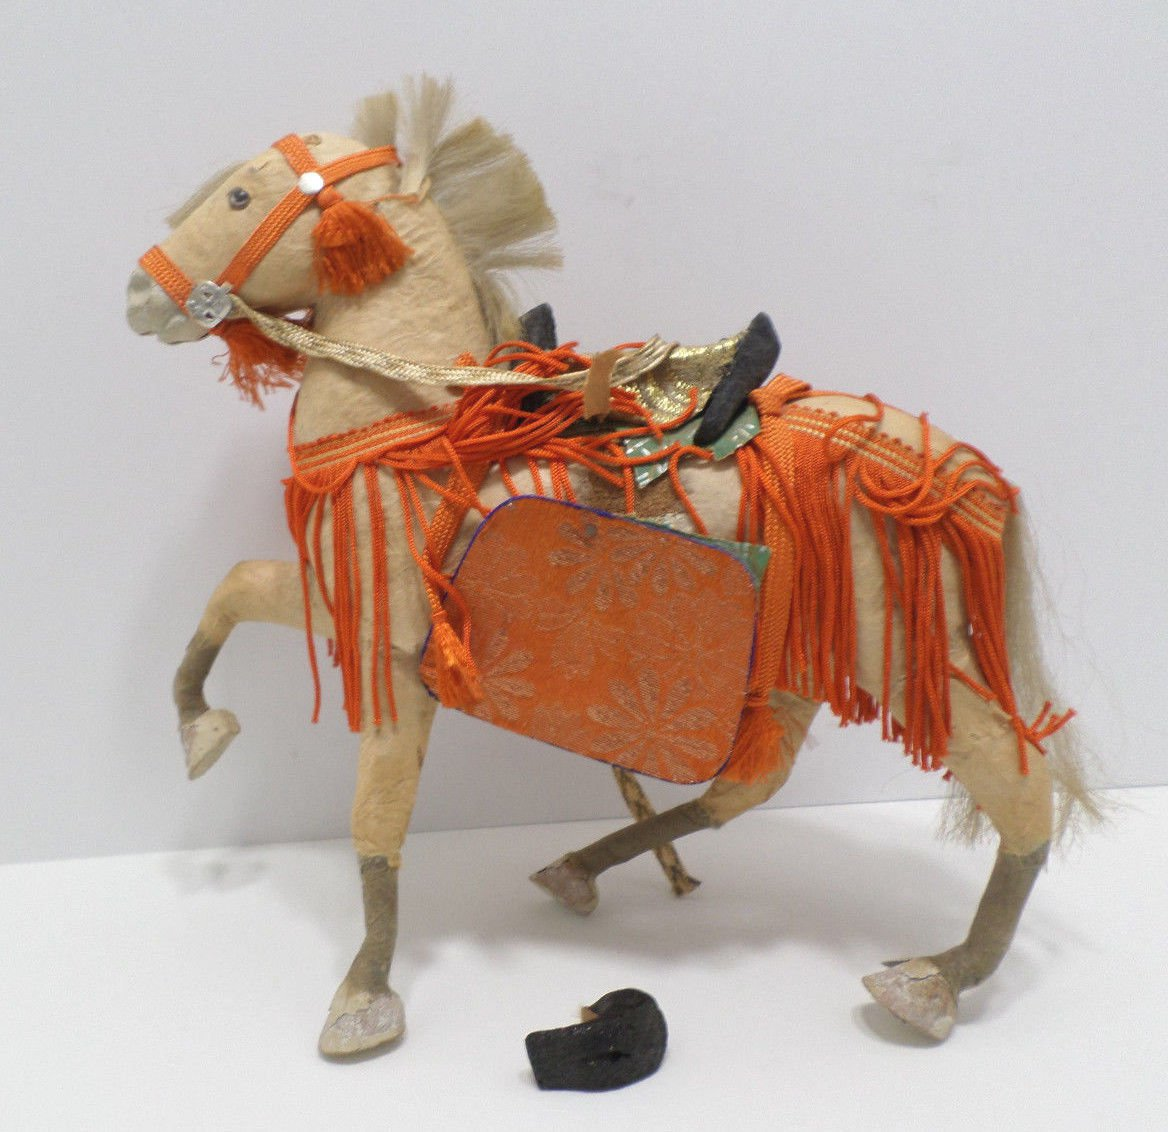 Antique Japanese Horse Figure Composition for a Boys Day Festival in Japan